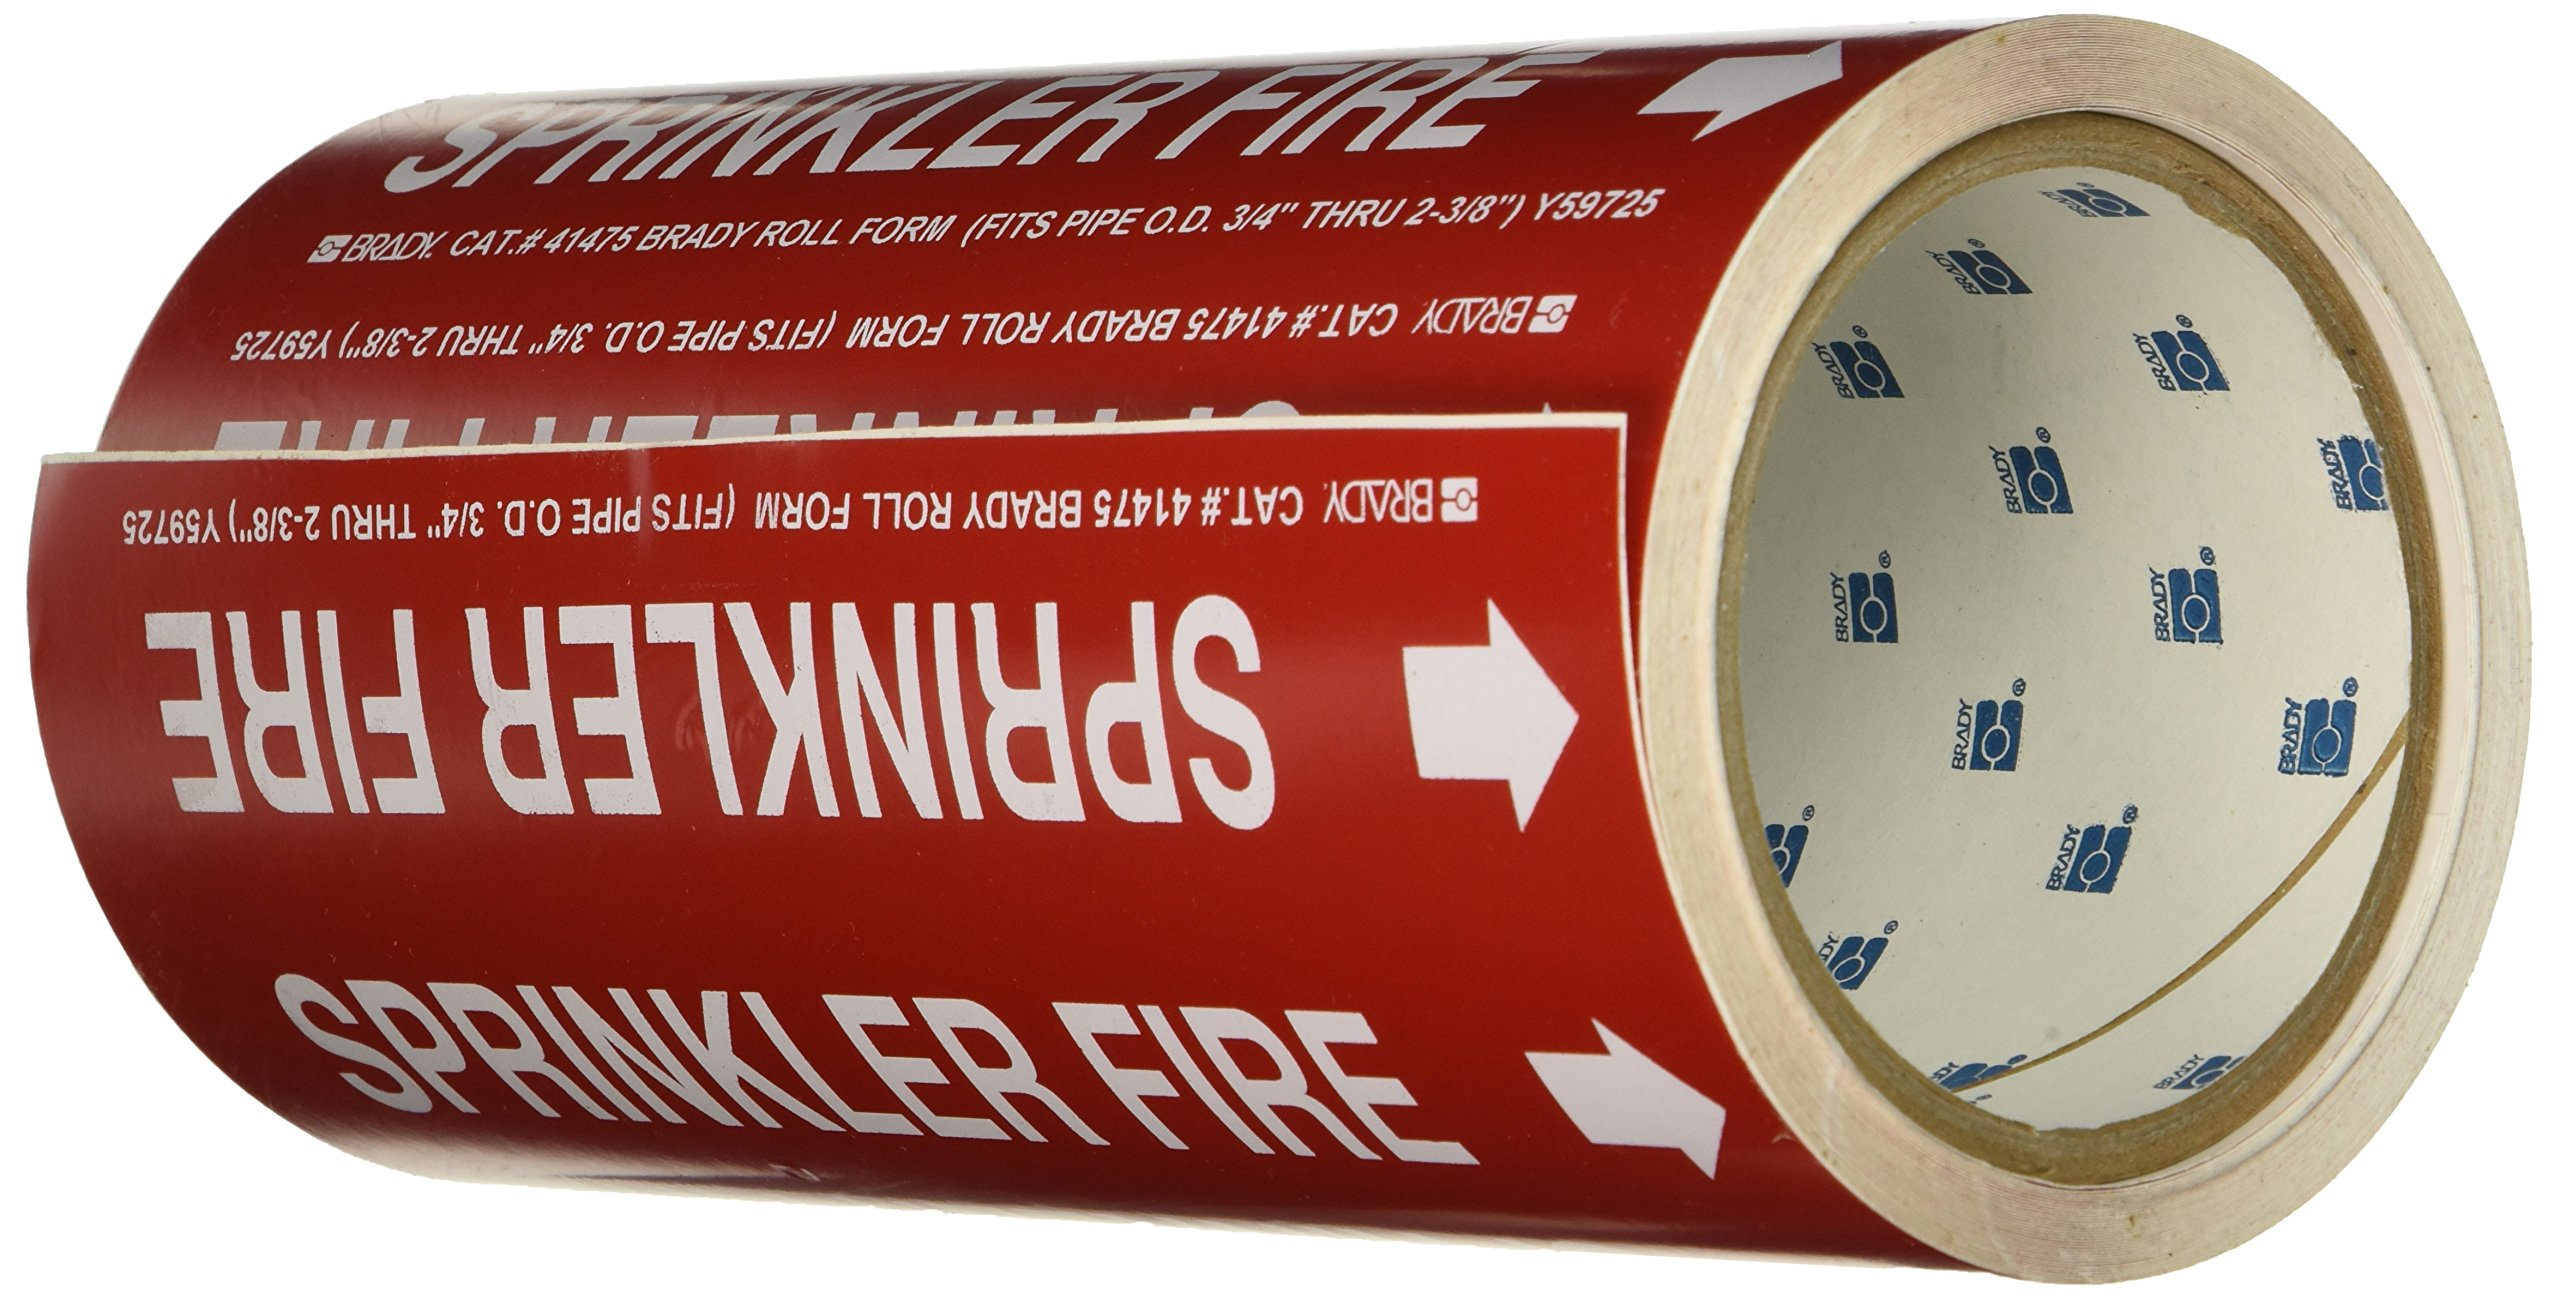 Brady 41475 Roll Form Pipe Markers, B-946, 8'' X 30', White On Red Pressure Sensitive Vinyl, Legend ''Sprinkler Fire''